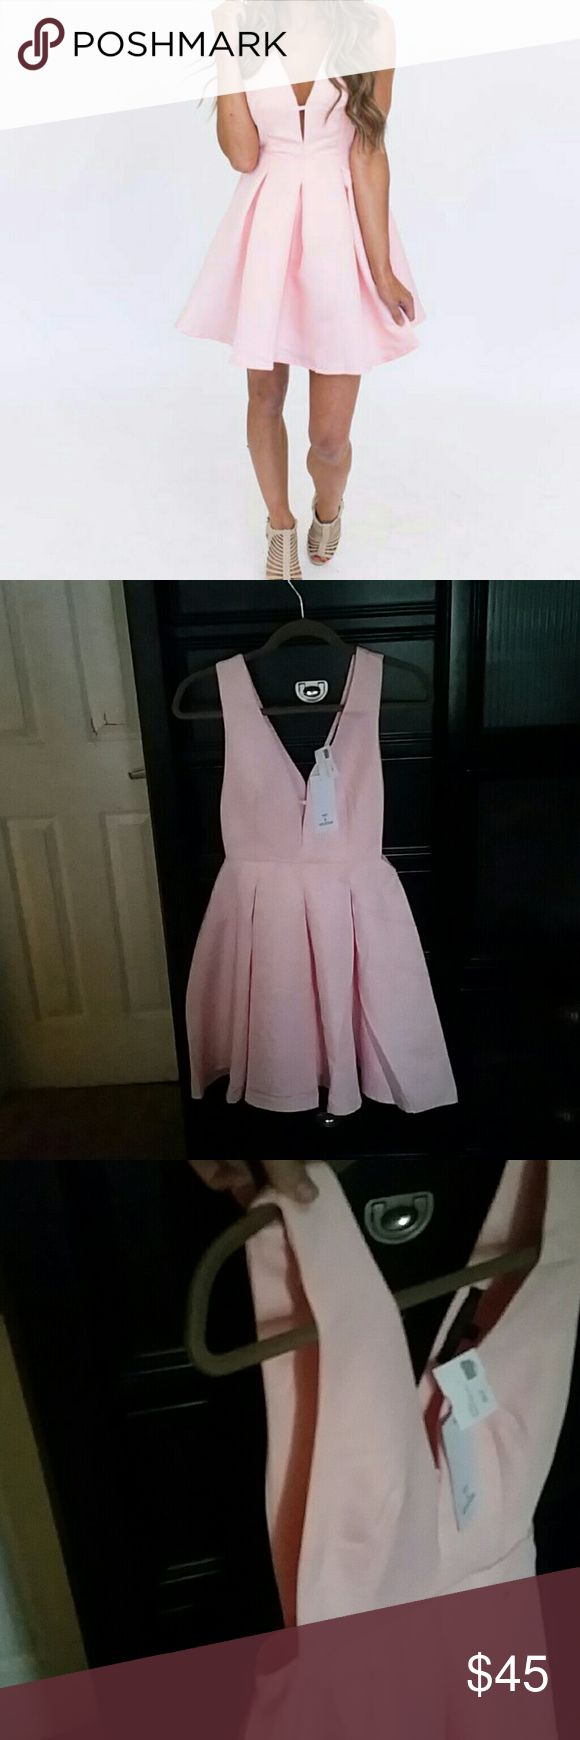 Dottie Couture dress Never worn, light pink/peach Dottie Couture dress. Originally $56, no longer available on the website. I loved this dress, but it was too short on me. Open sides from underarms to waist. Dottie Couture Dresses Mini